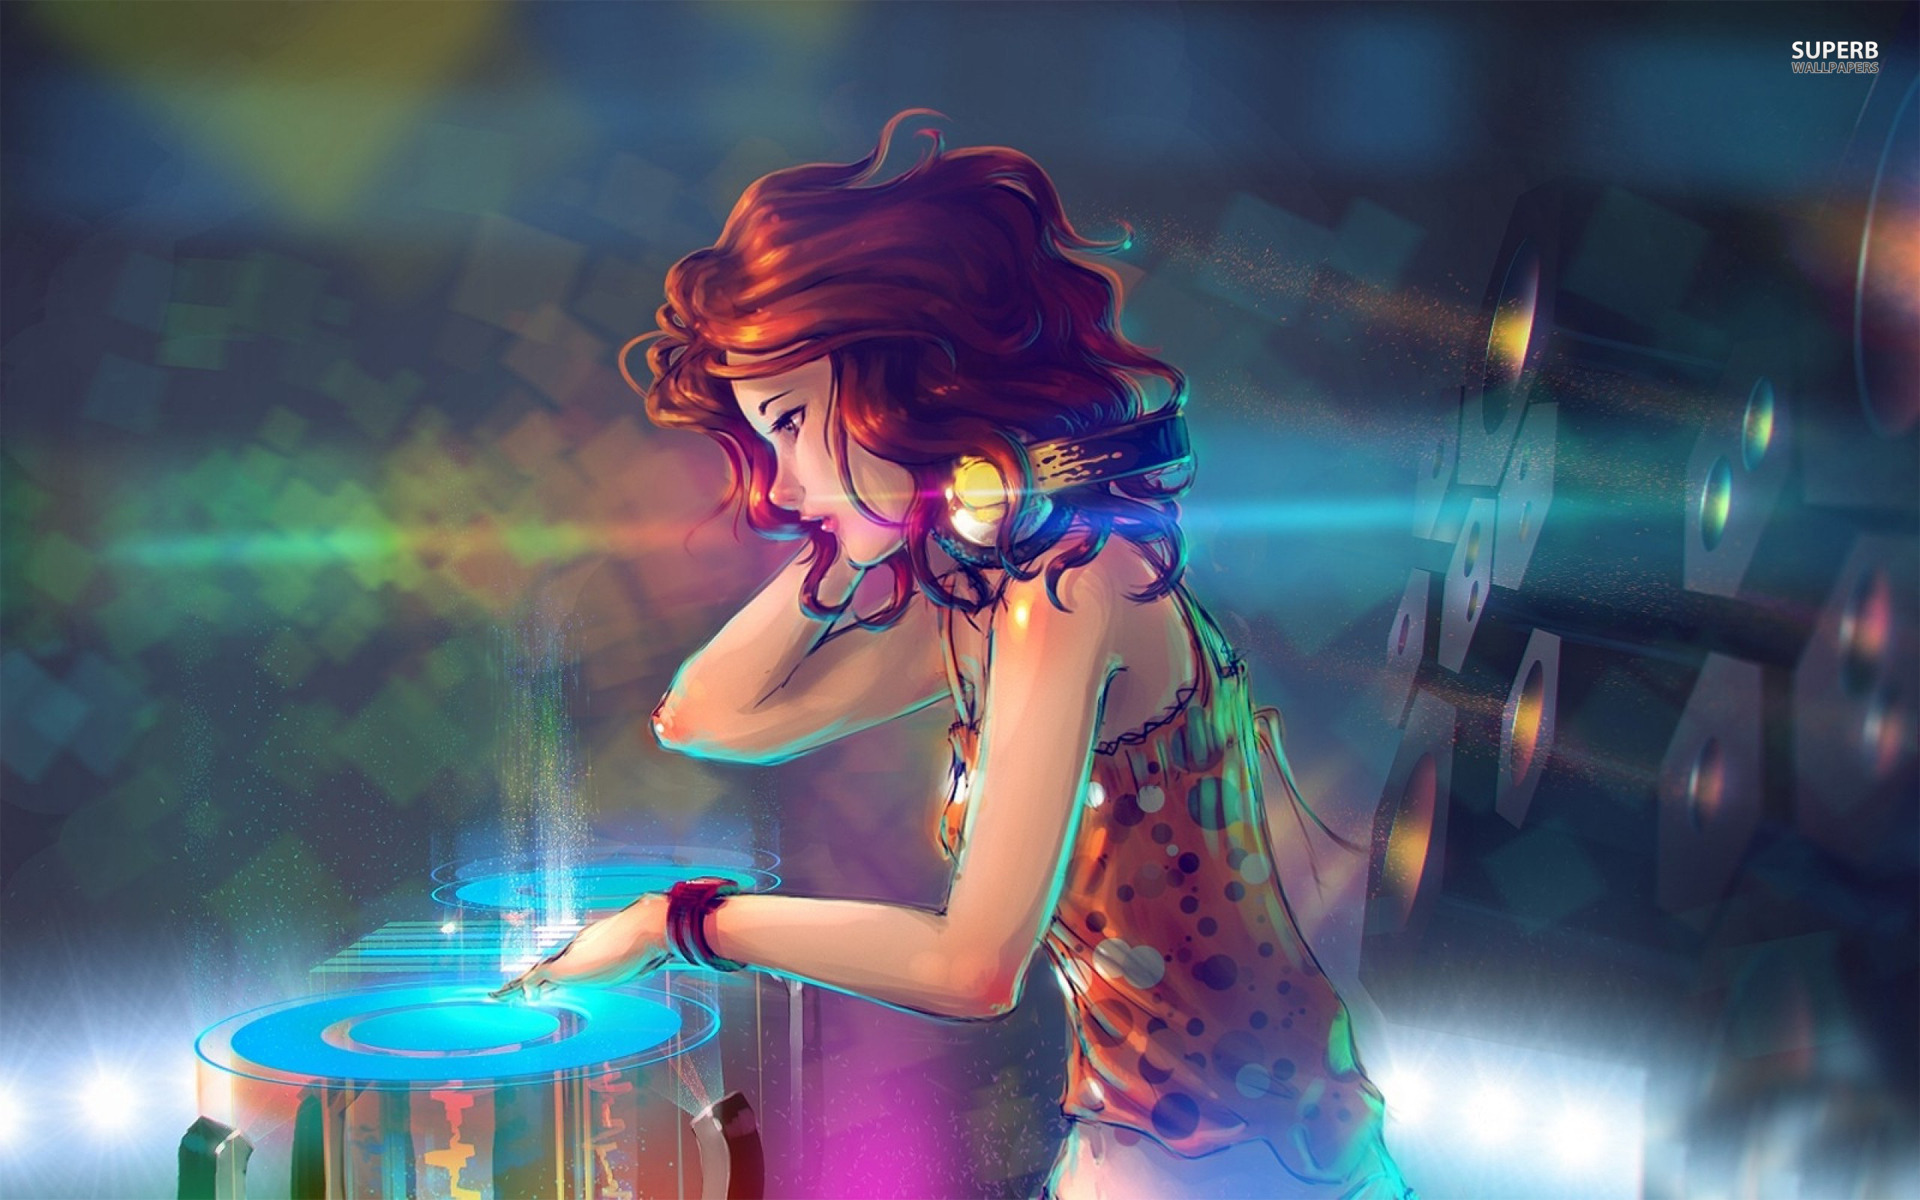 Woman DJ wallpaper | Wallpapers | Pinterest | Women's, Wallpapers